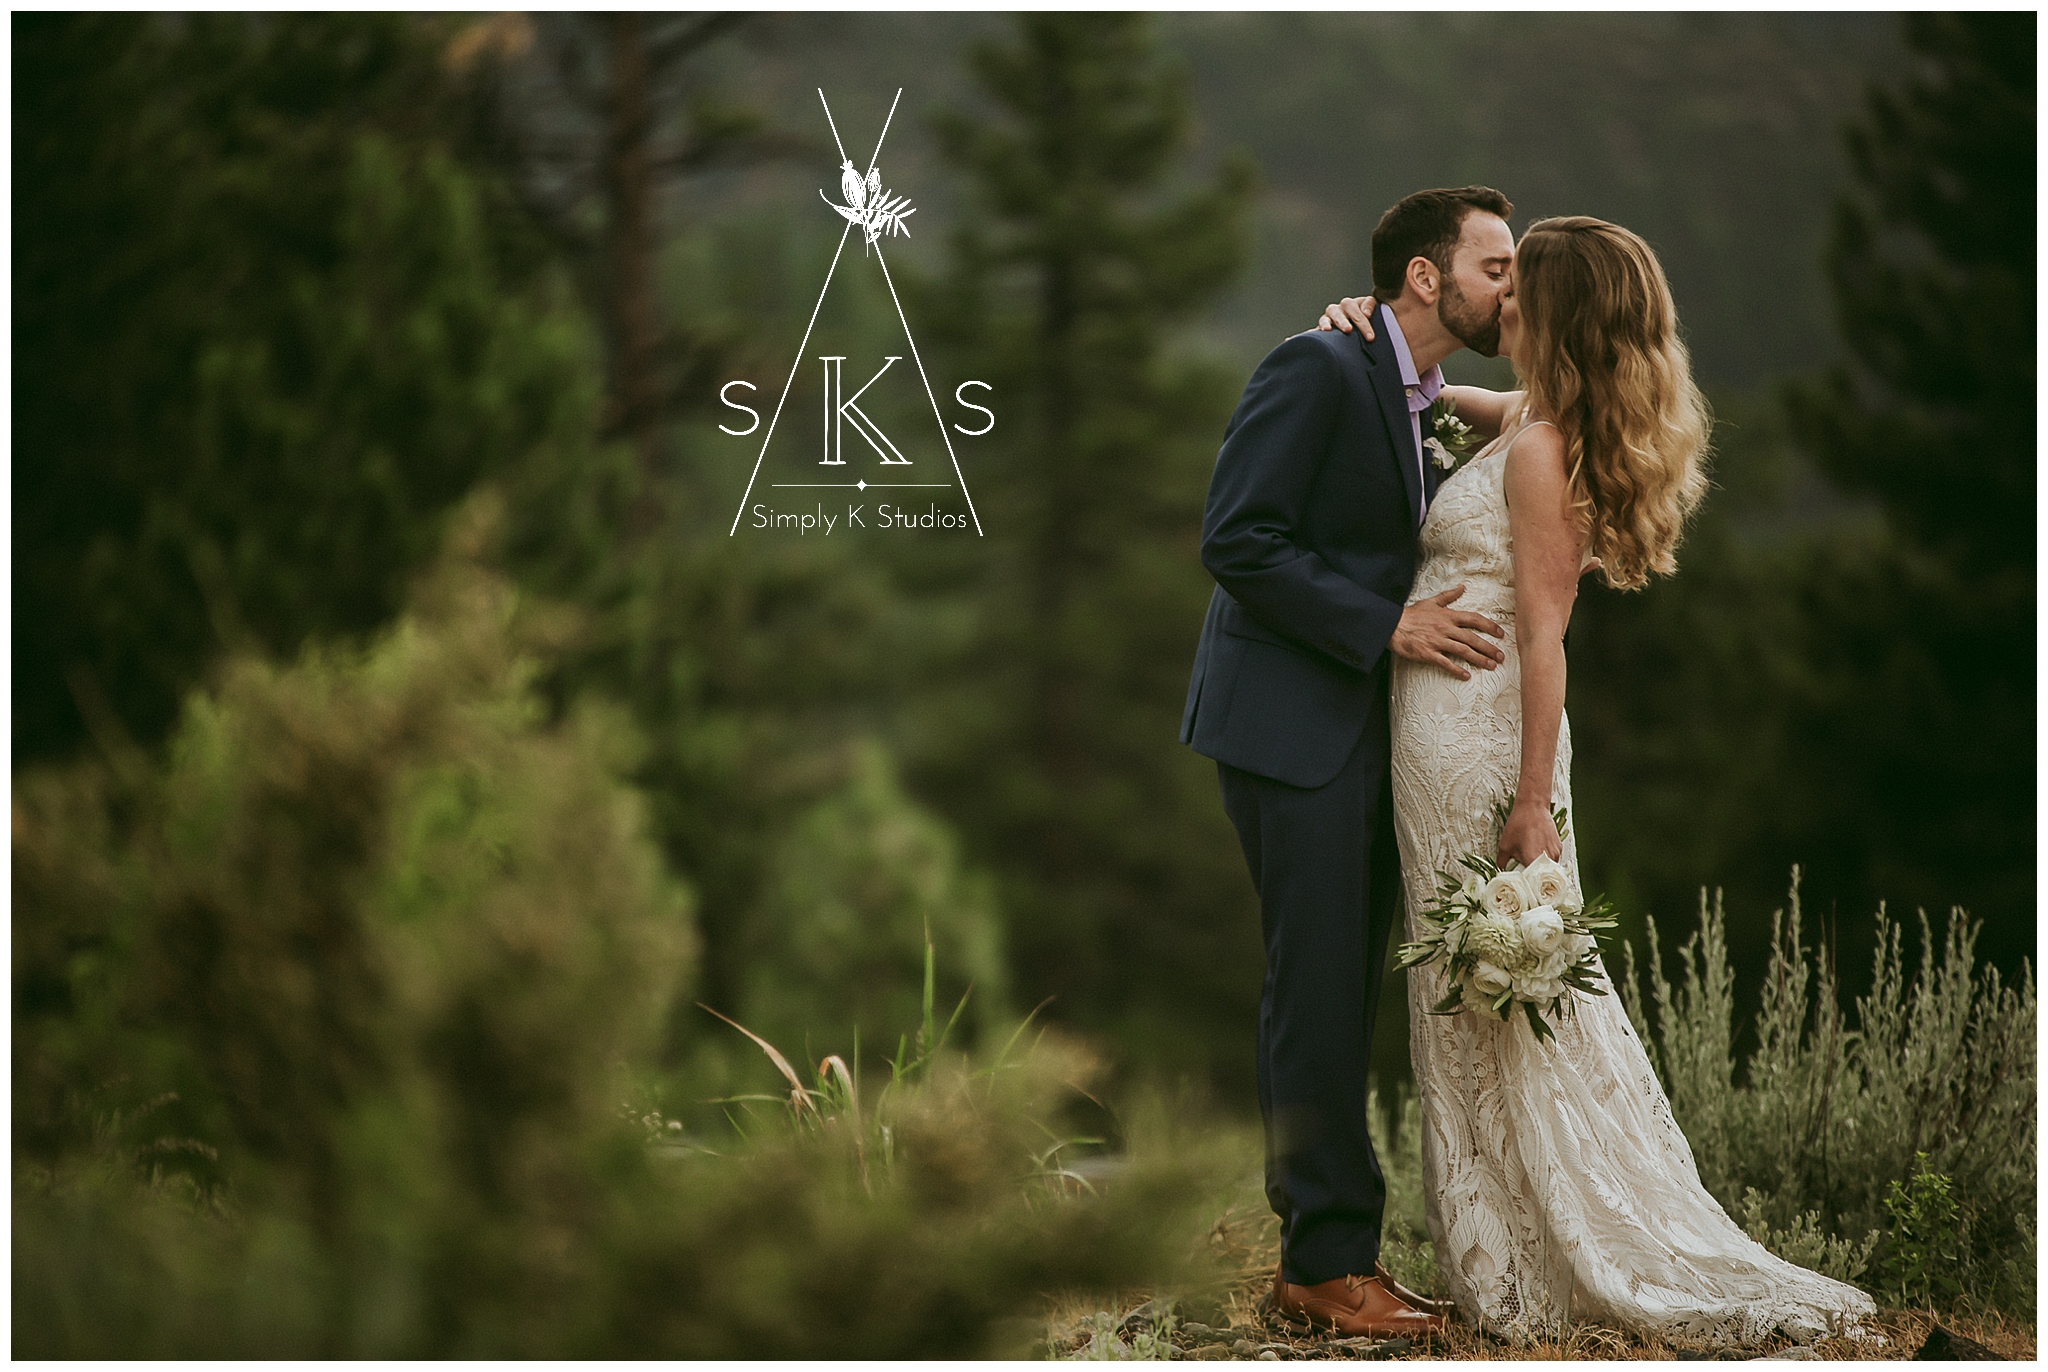 95 Simply K Studios Wedding Photographers near Lake Tahoe NV.jpg